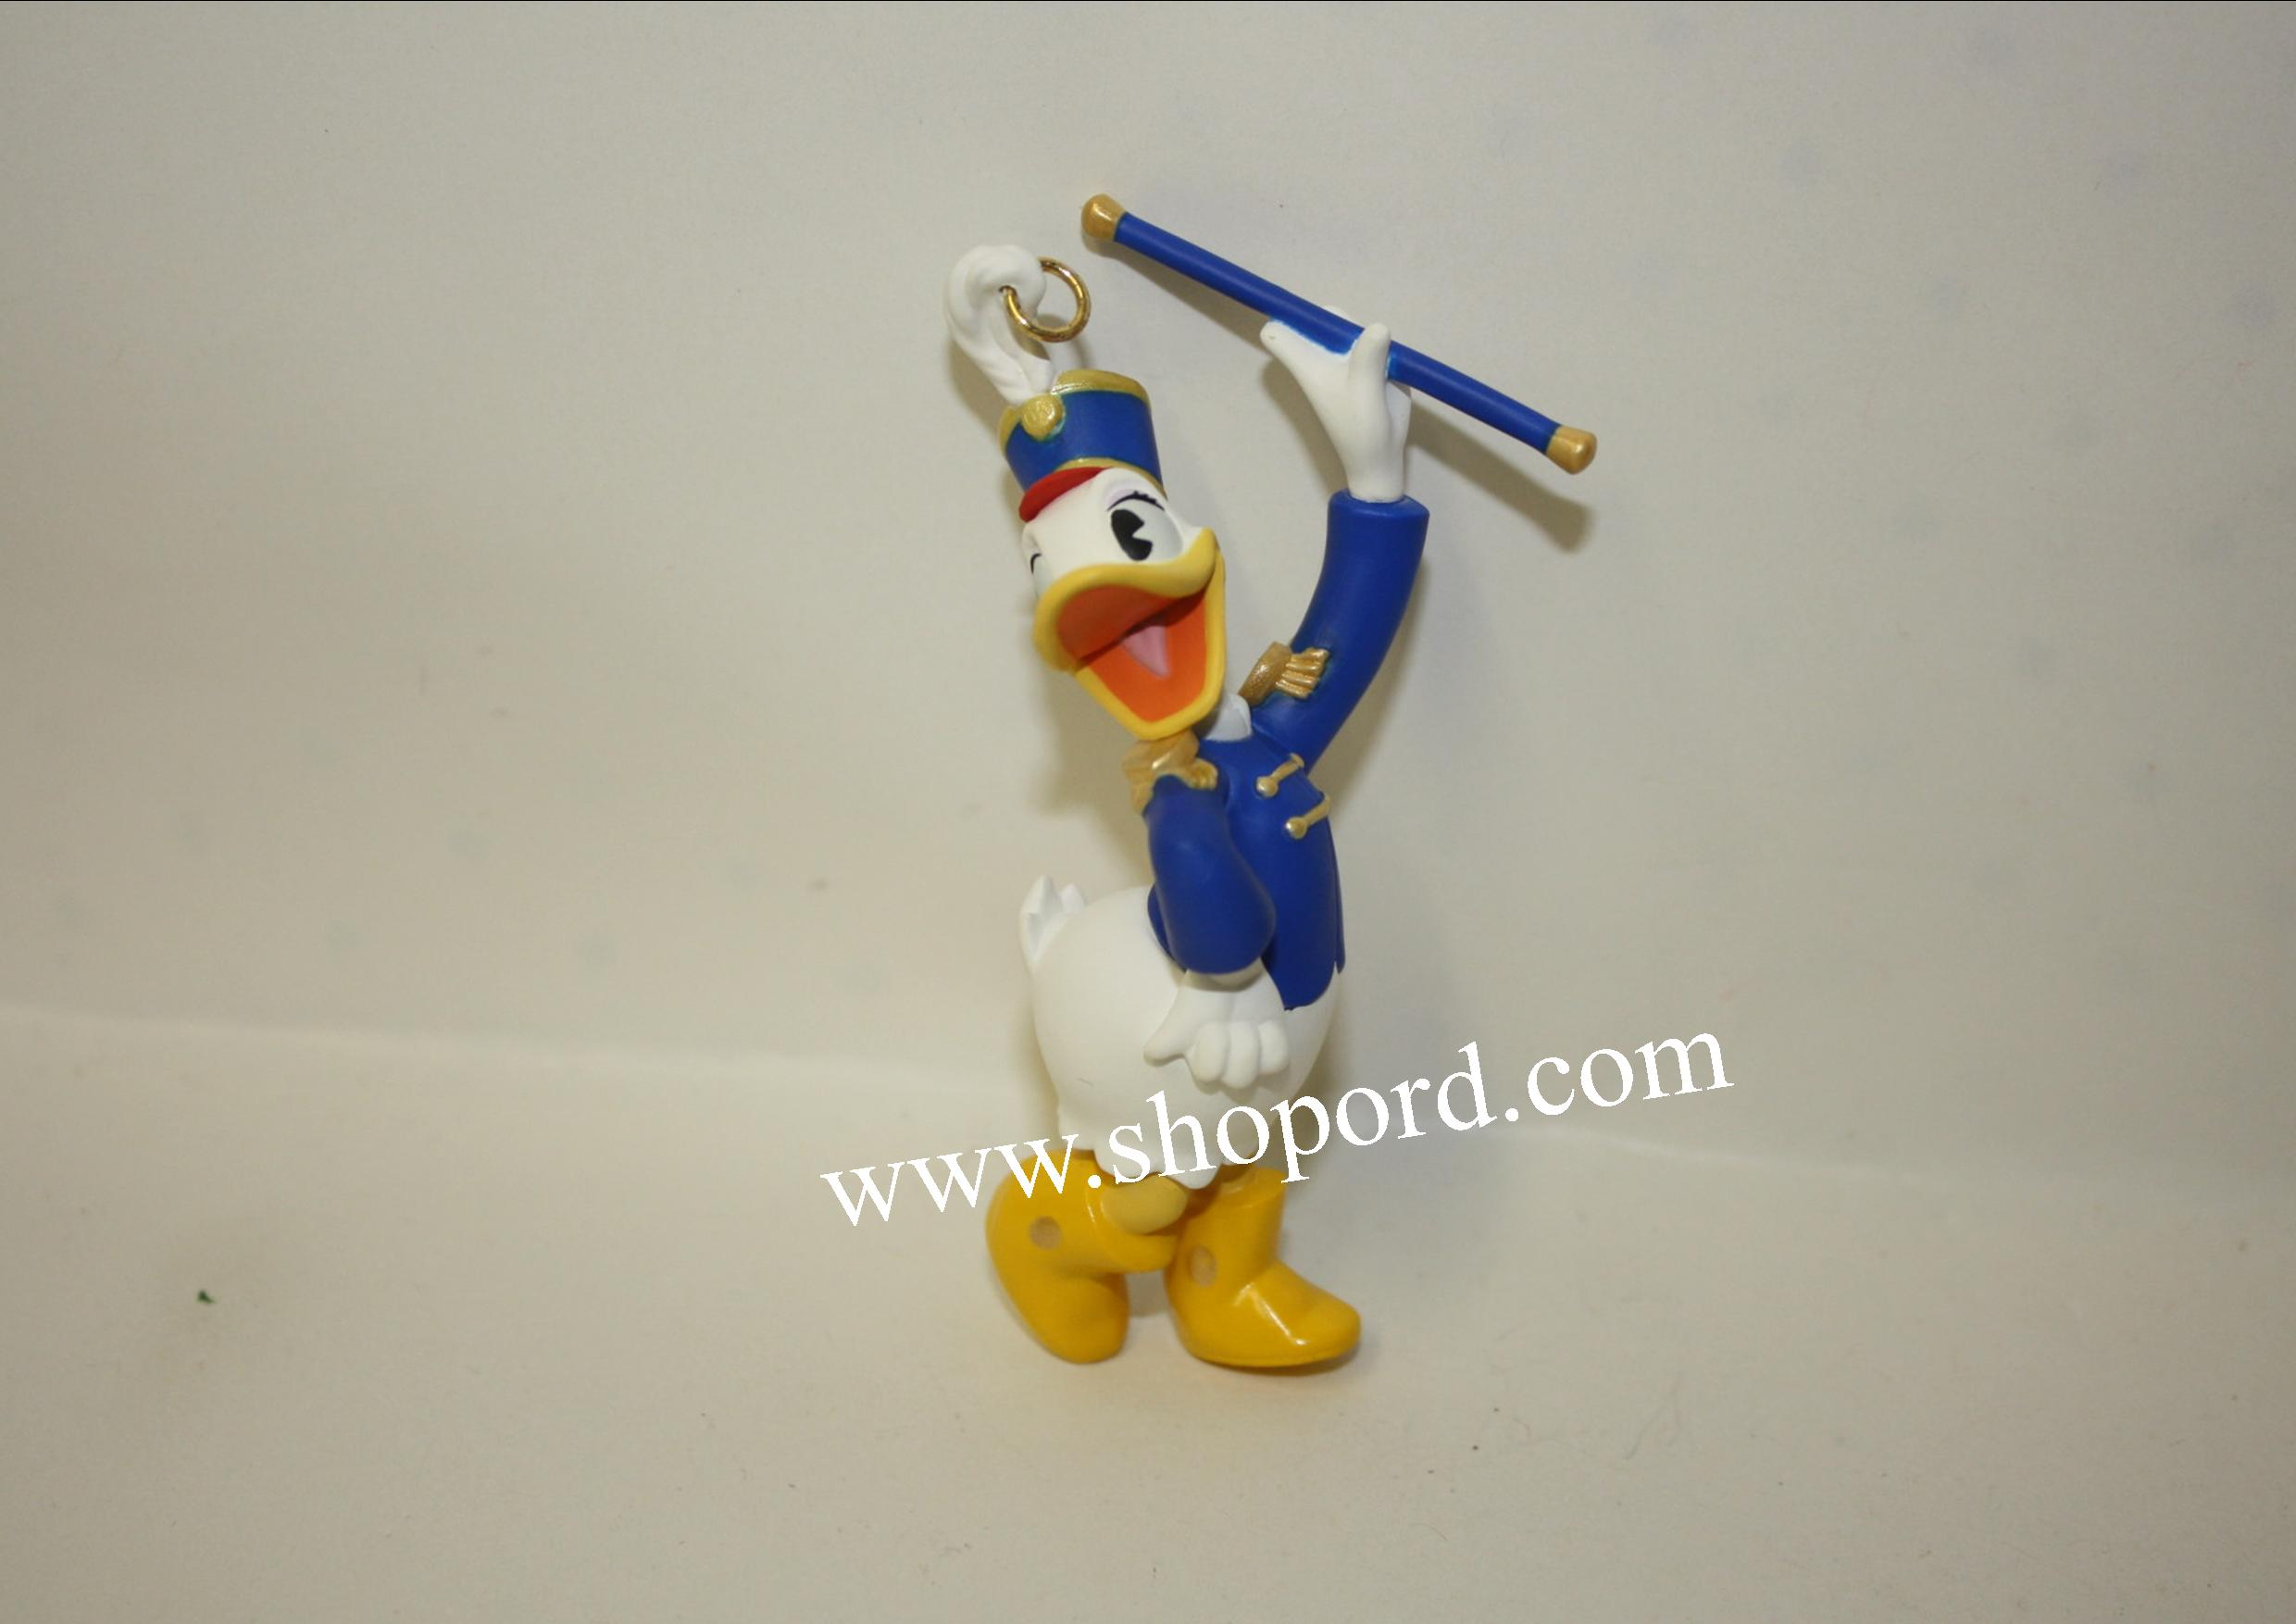 Hallmark 2000 Baton Twirler Daisy Ornament 4th In The Disney Mickeys Holiday Parade QXD4034